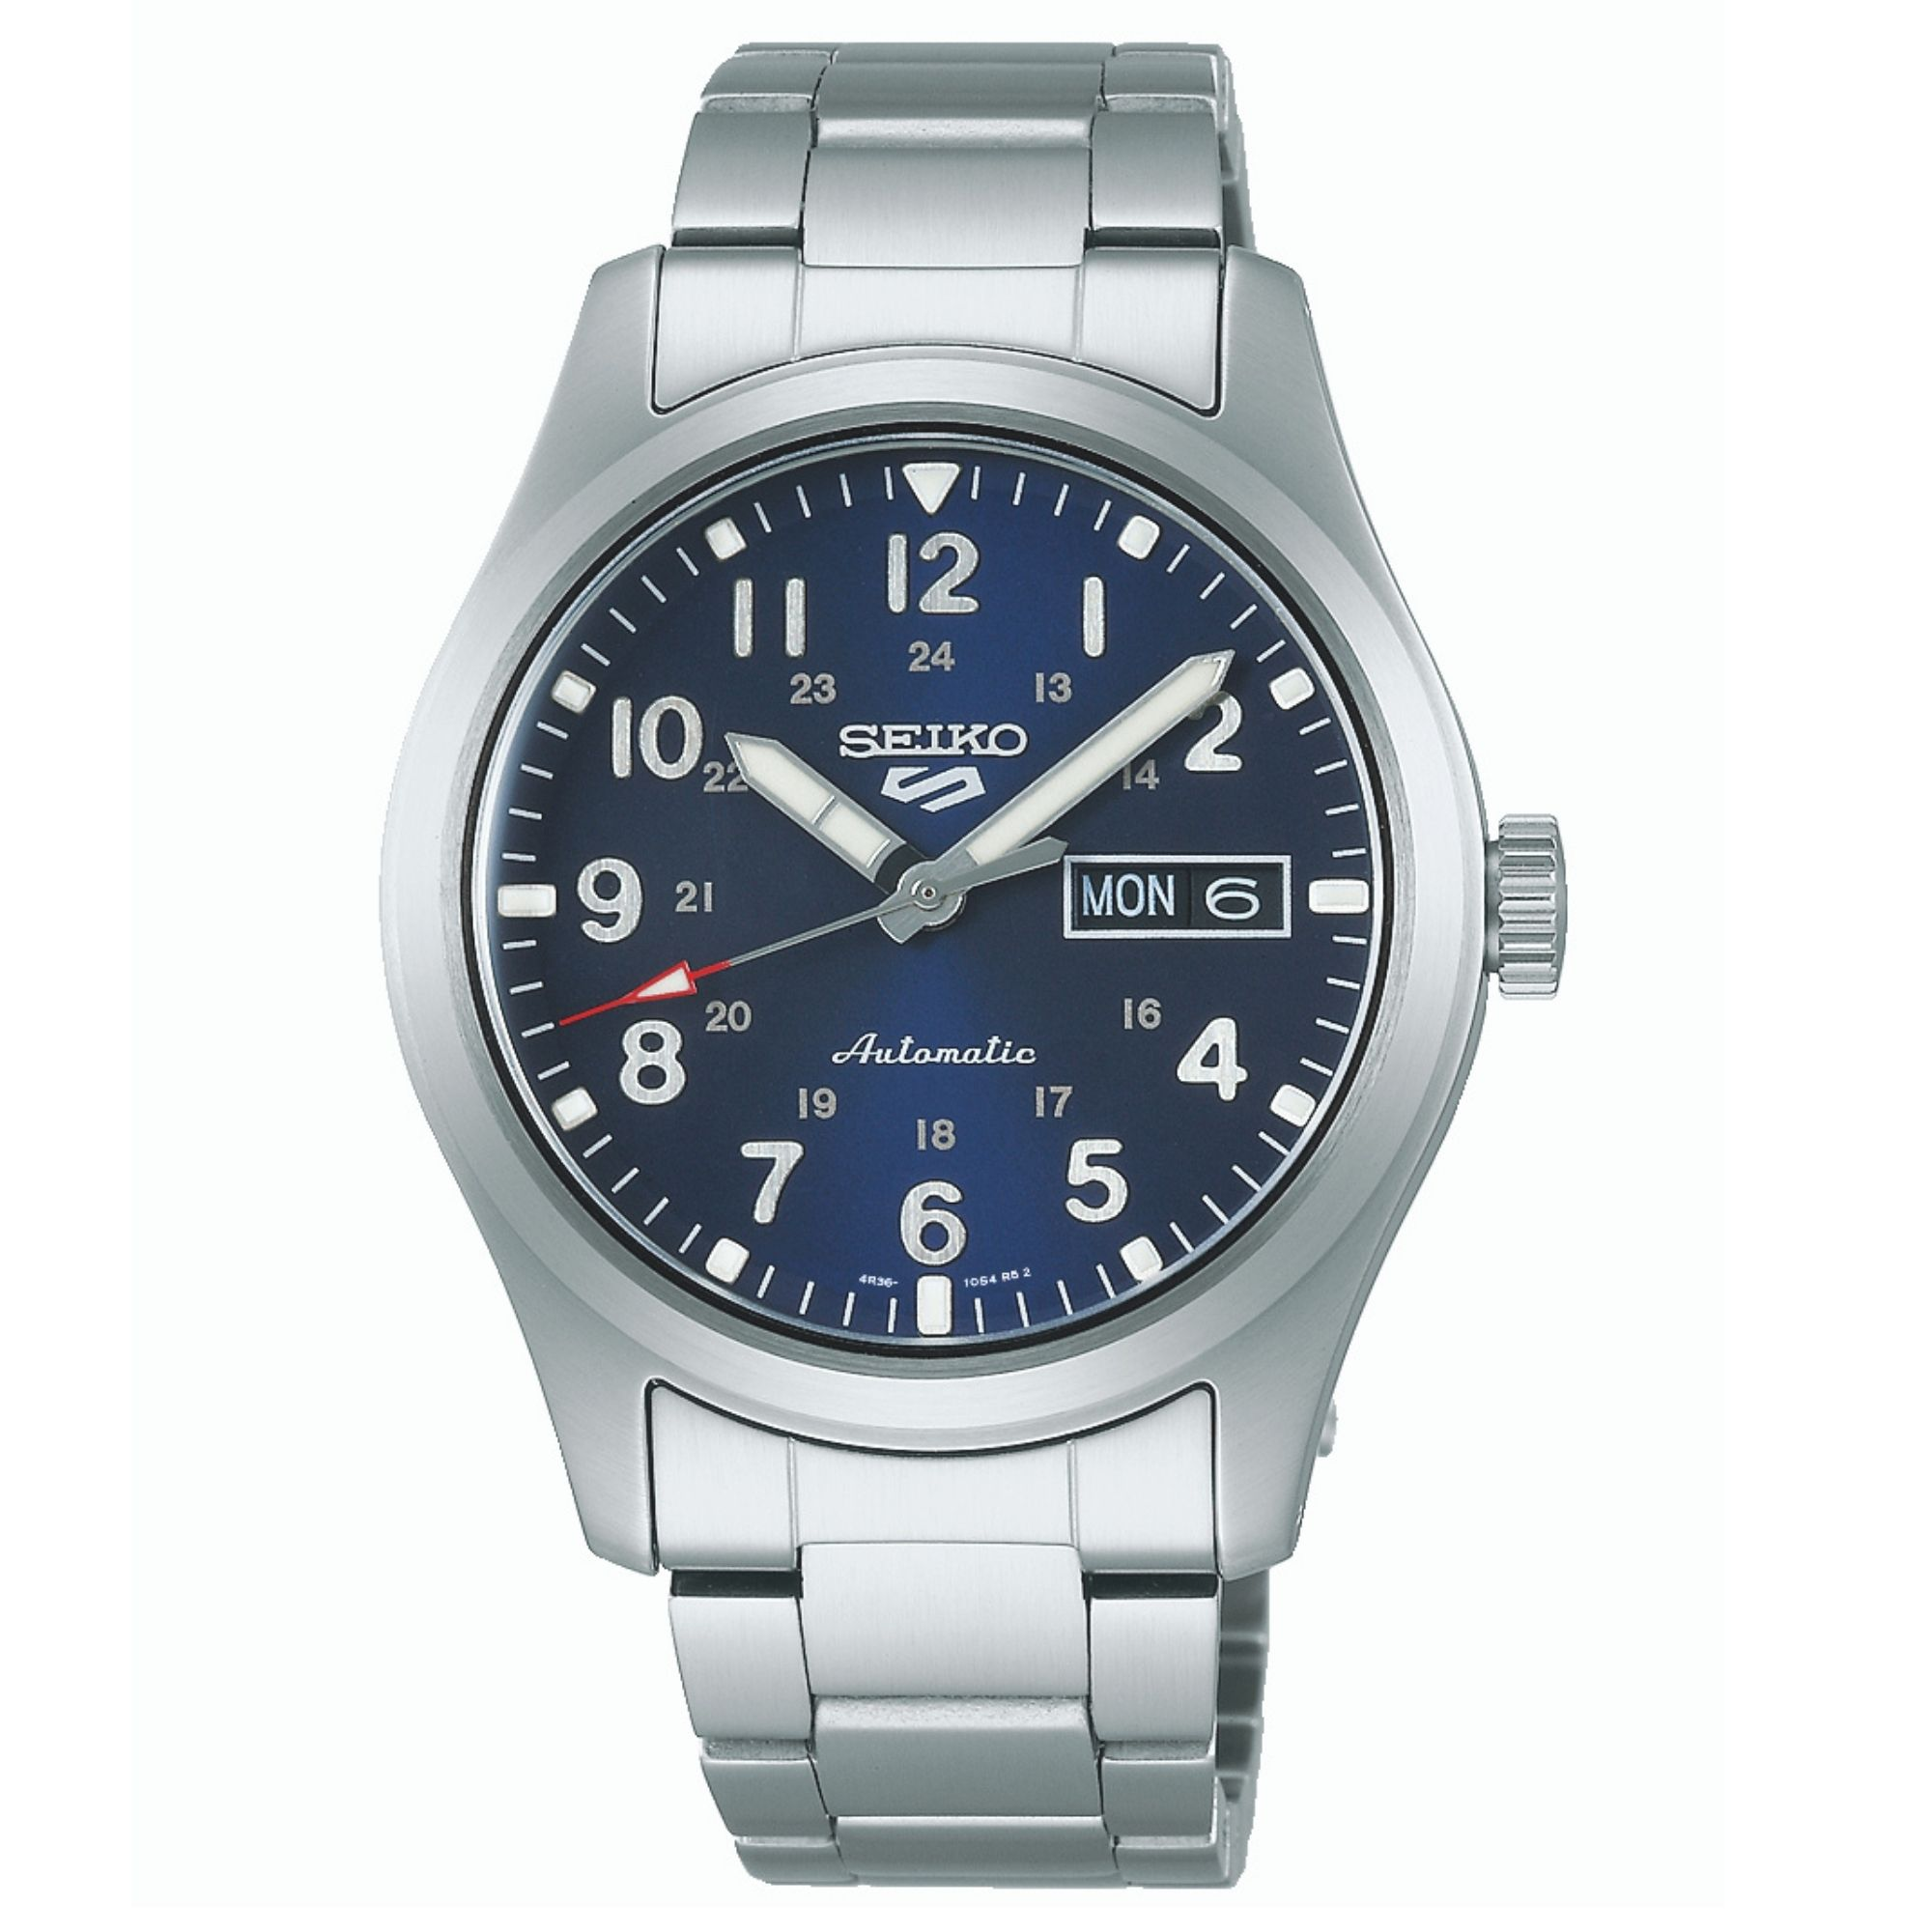 Seiko 5 Sports Automatic Movement Blue Dial Stainless Steel Bracelet Men's Watch SRPG29K1